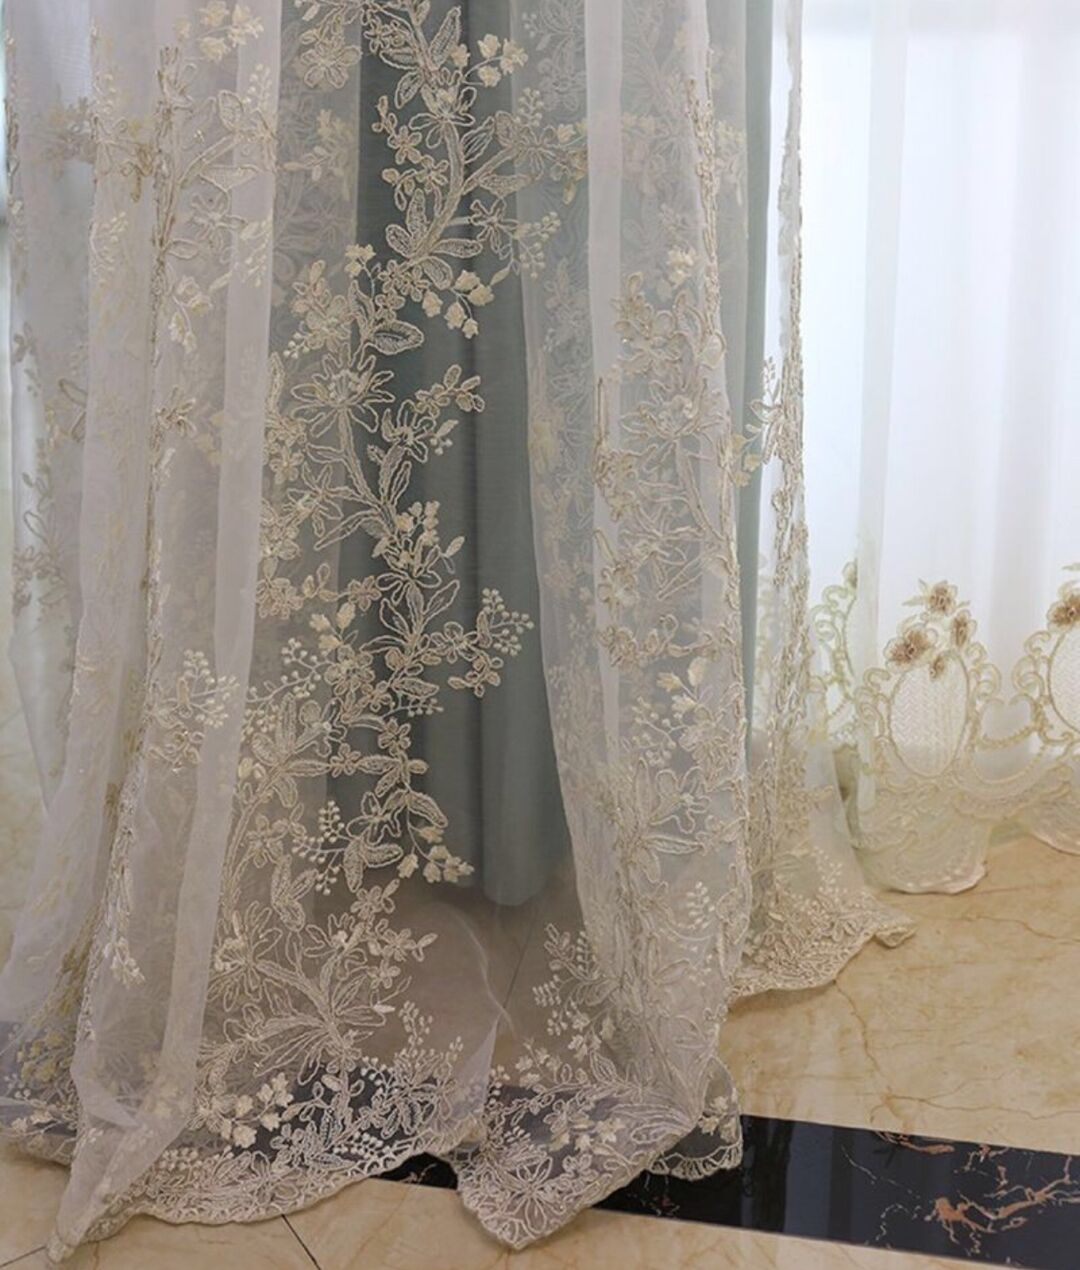 New Arrival Luxury Embroidery Floral Sheer Curtain Fabric for the living room